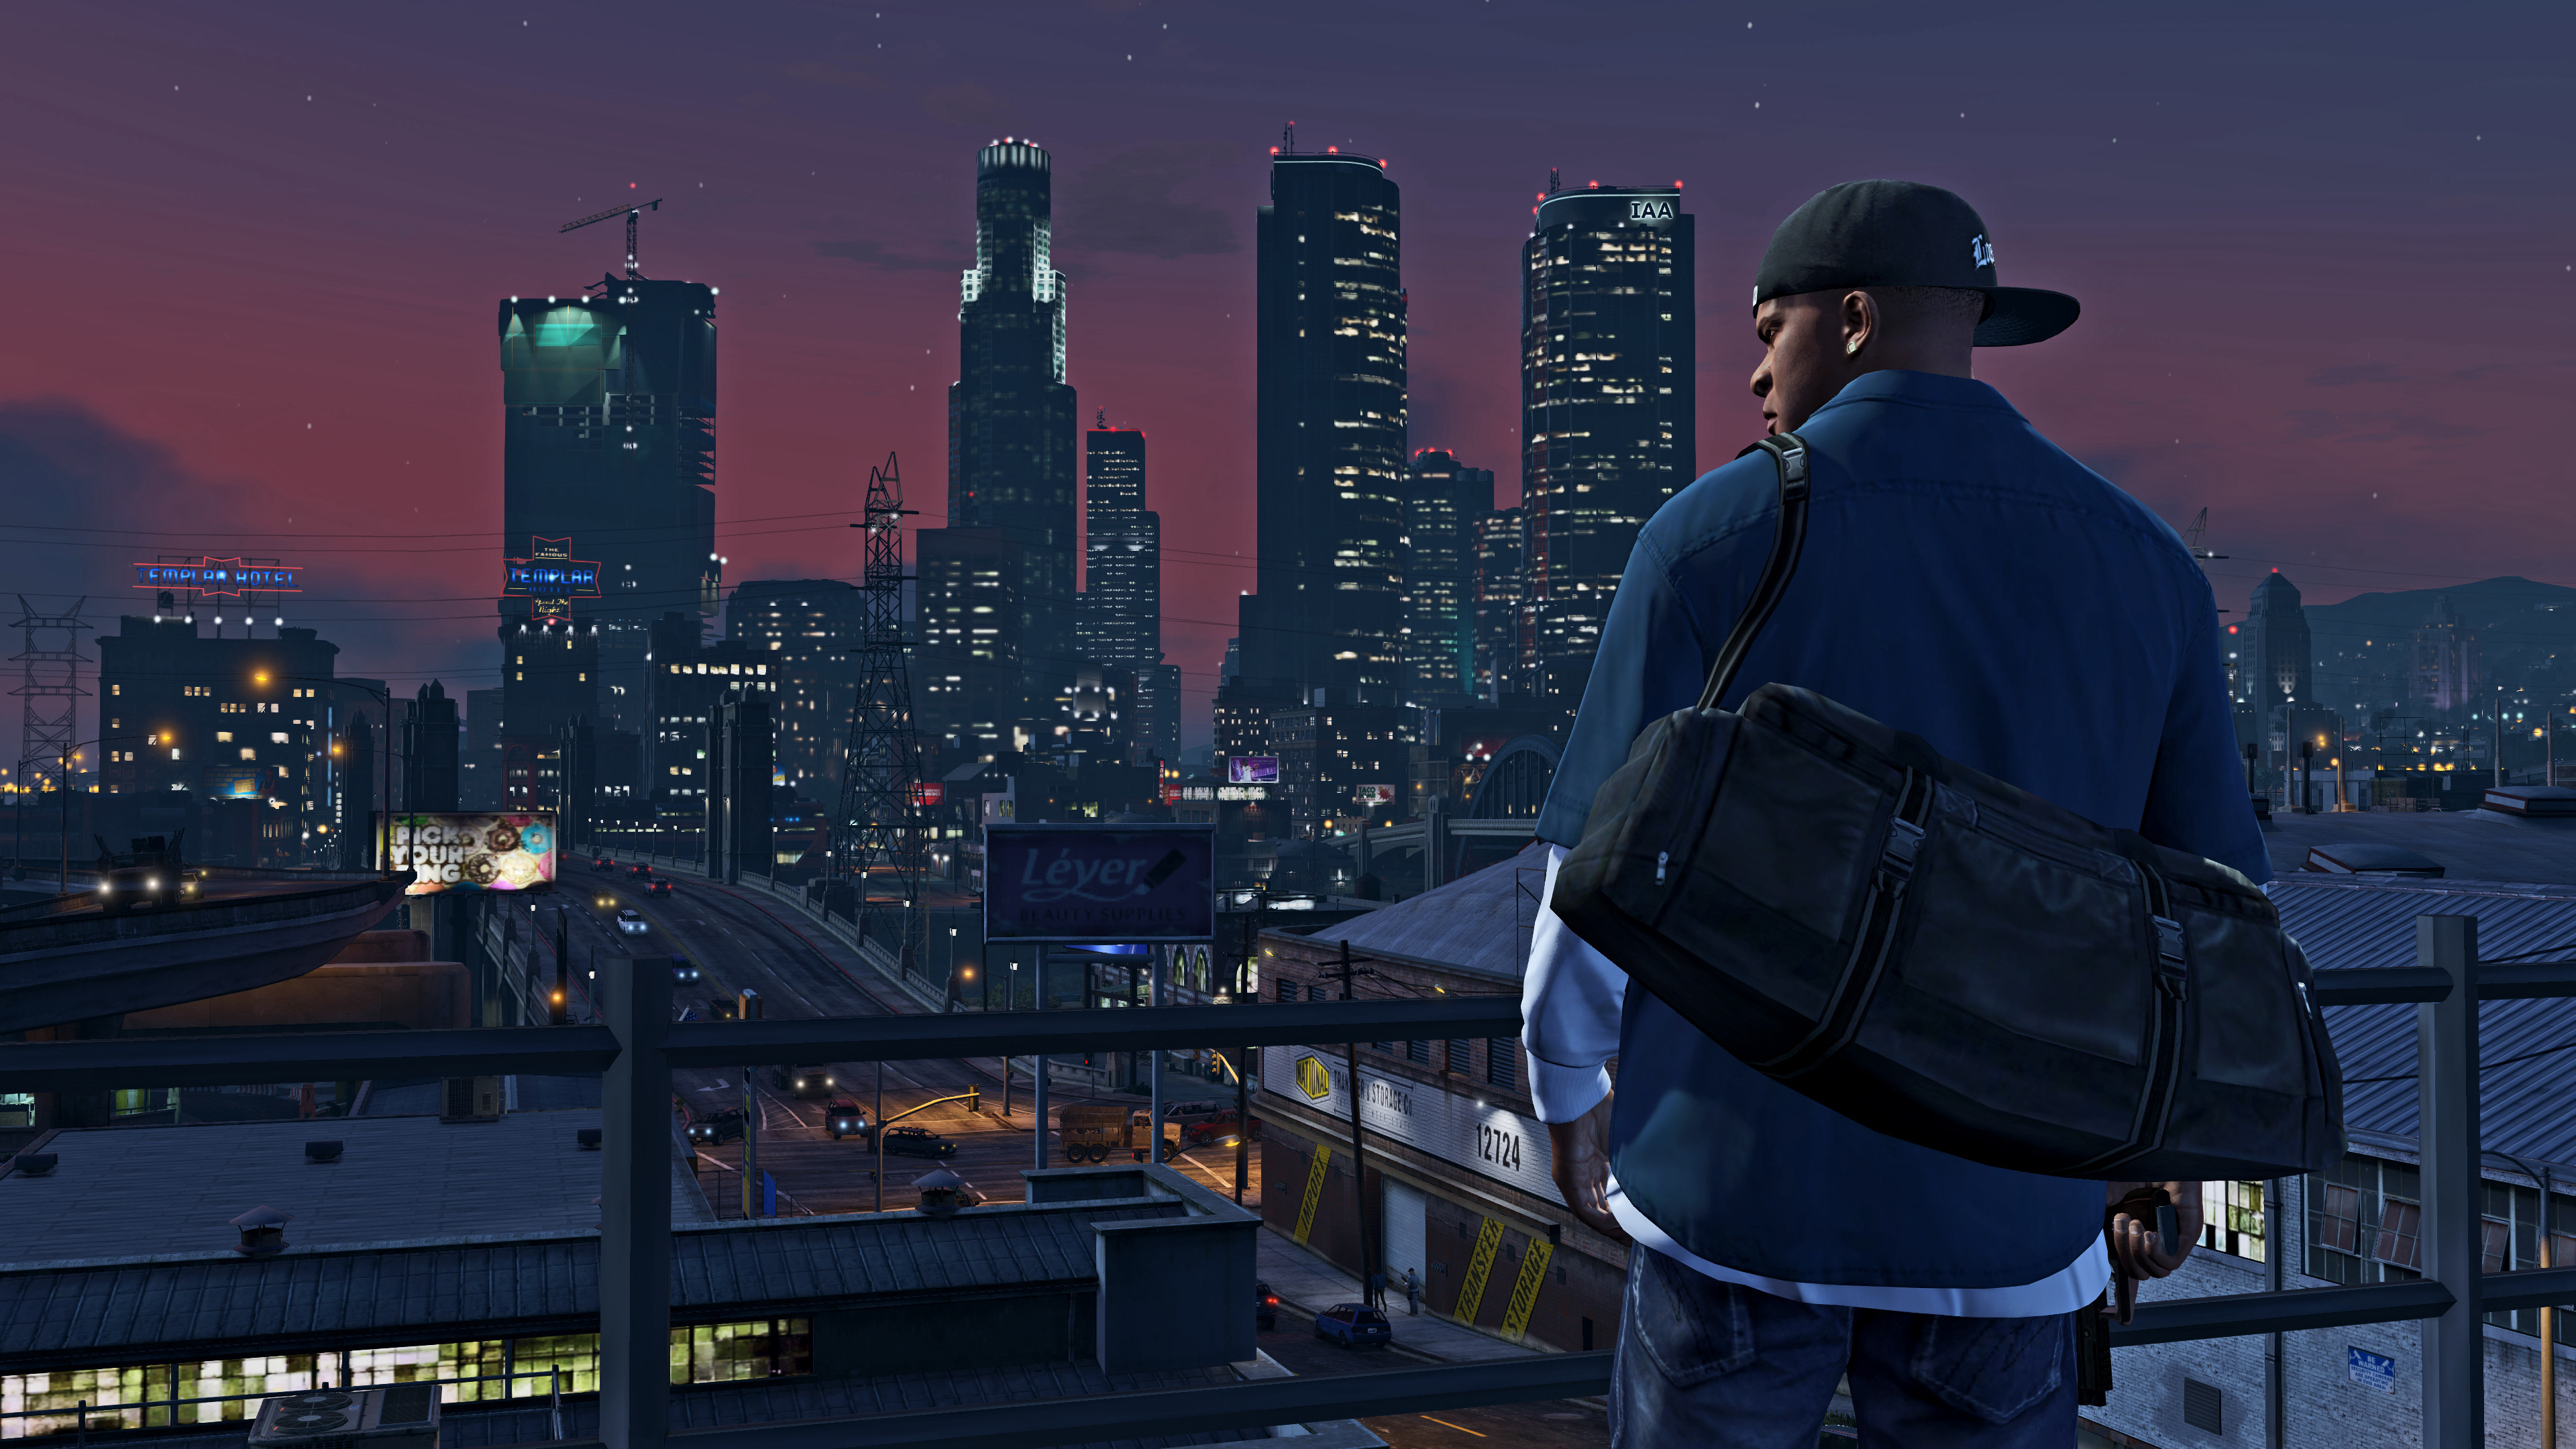 Tags: wallpapers | juego | GTA 5 | grand theft auto 5